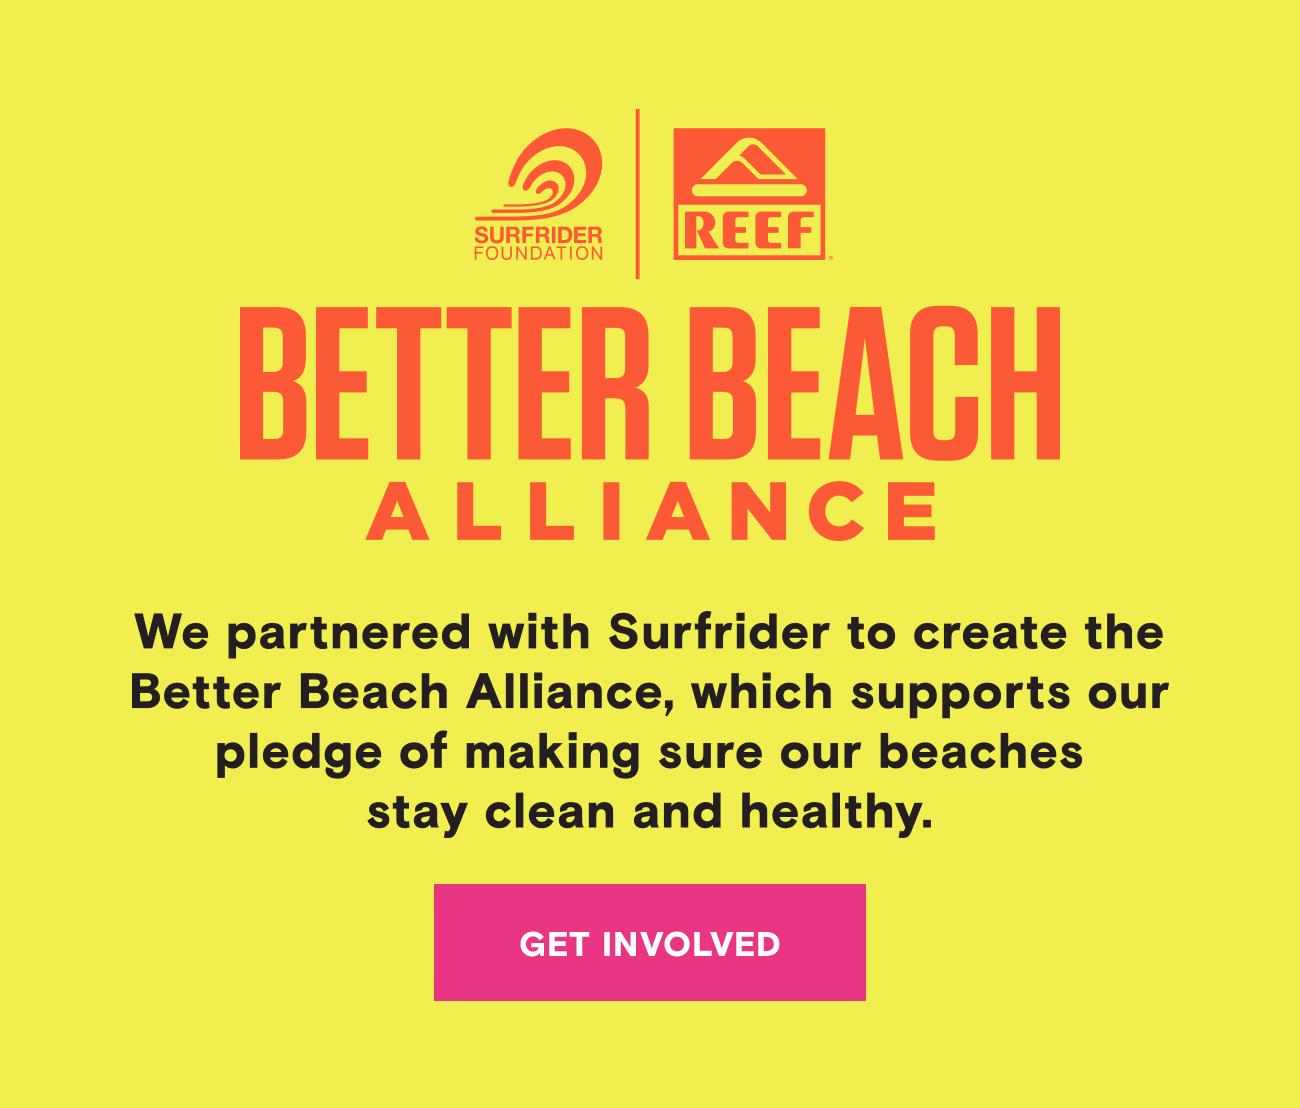 Better Beach Alliance